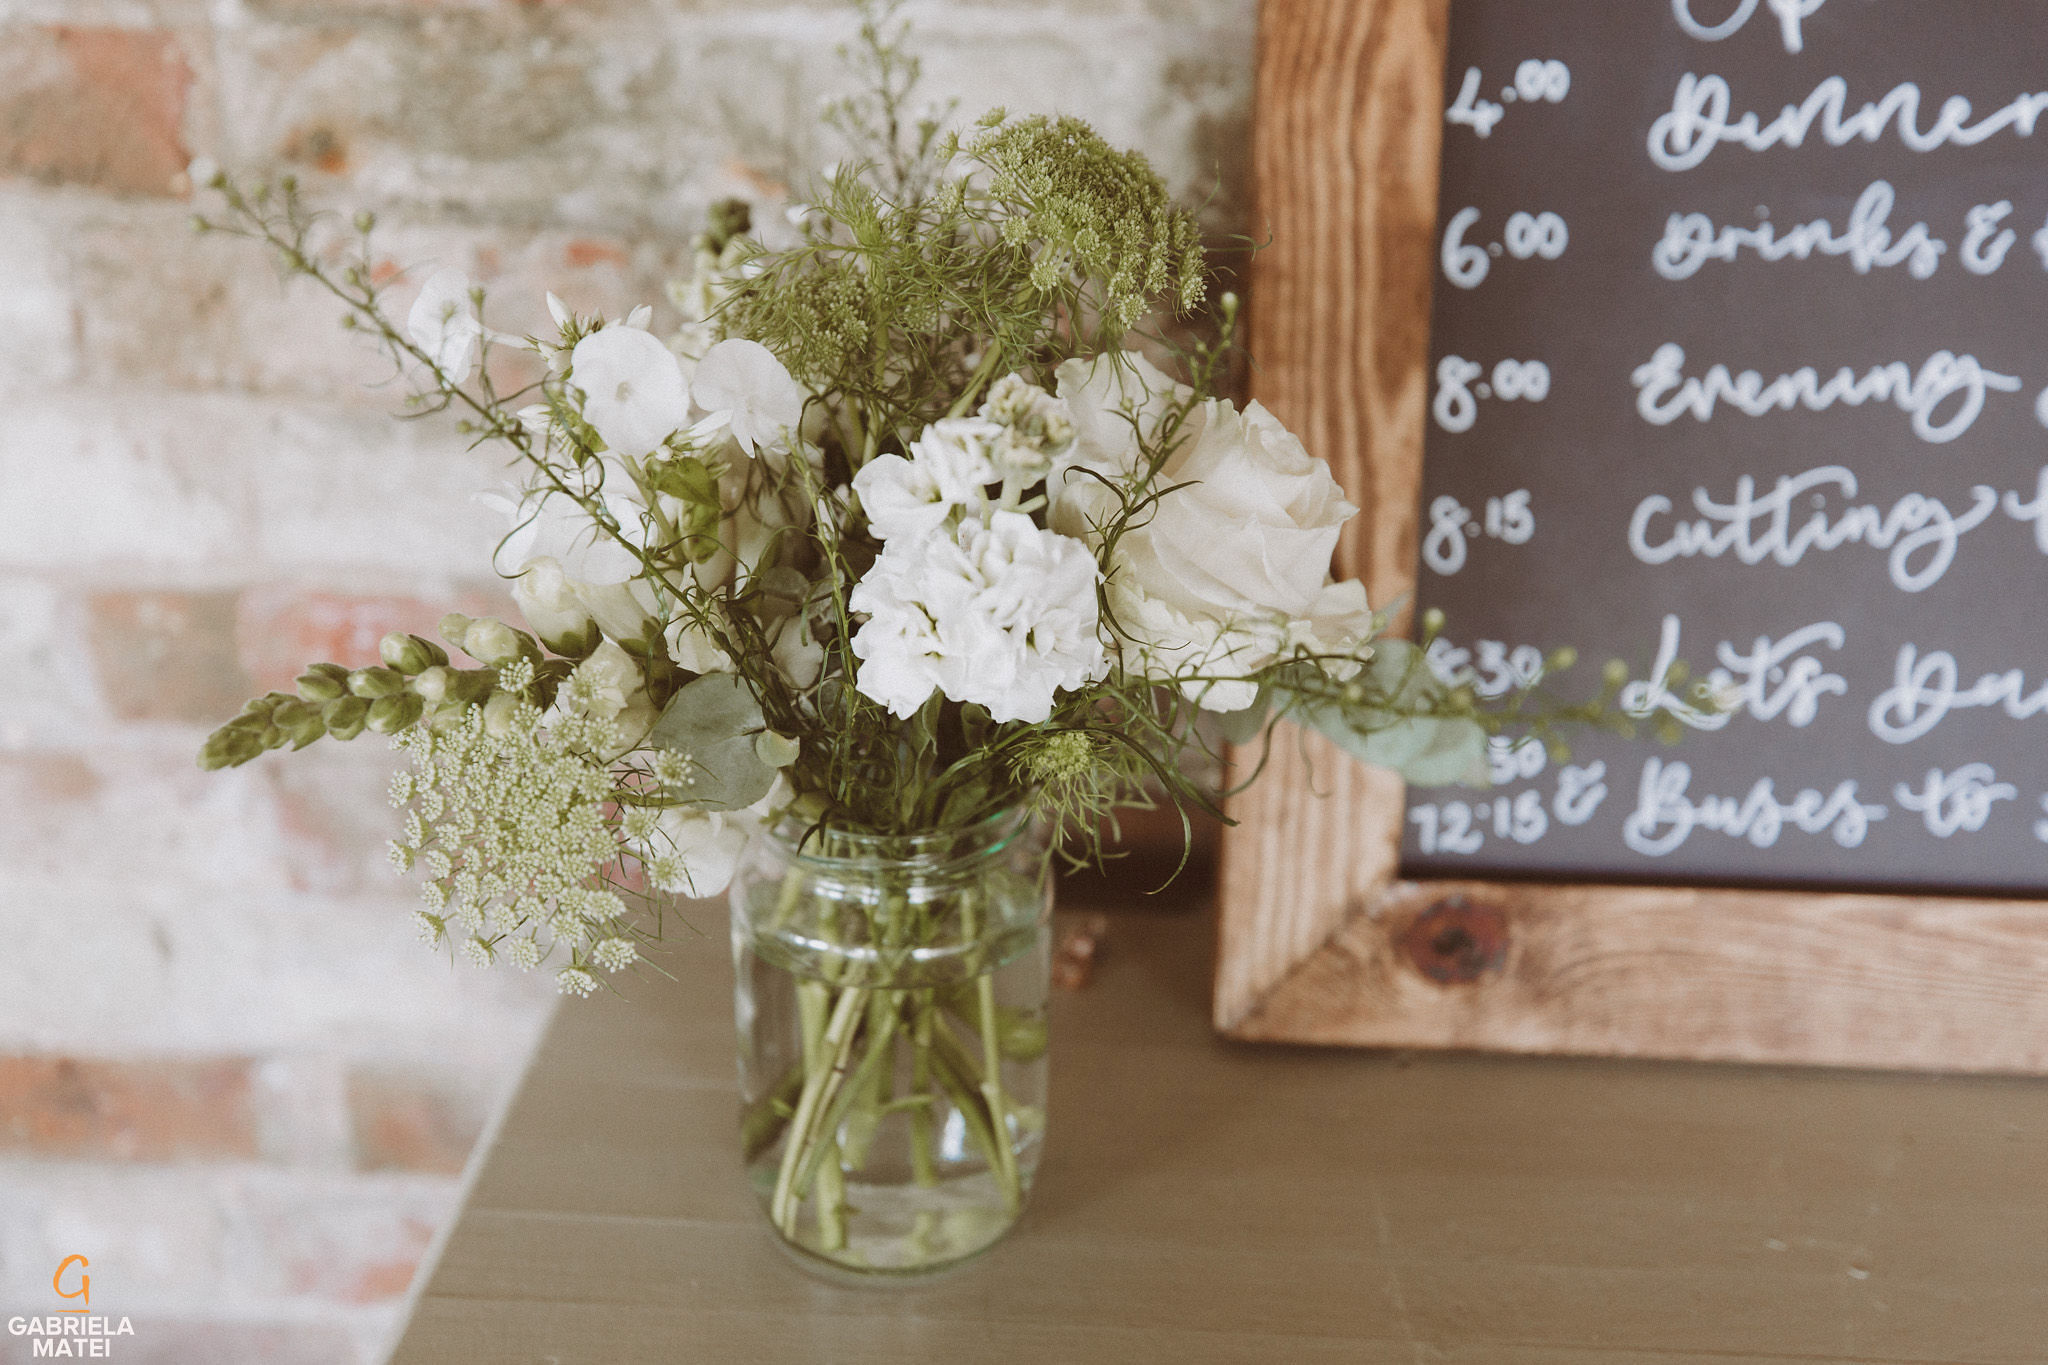 table details of flowers at South Stoke Barn wedding venue in Arundel